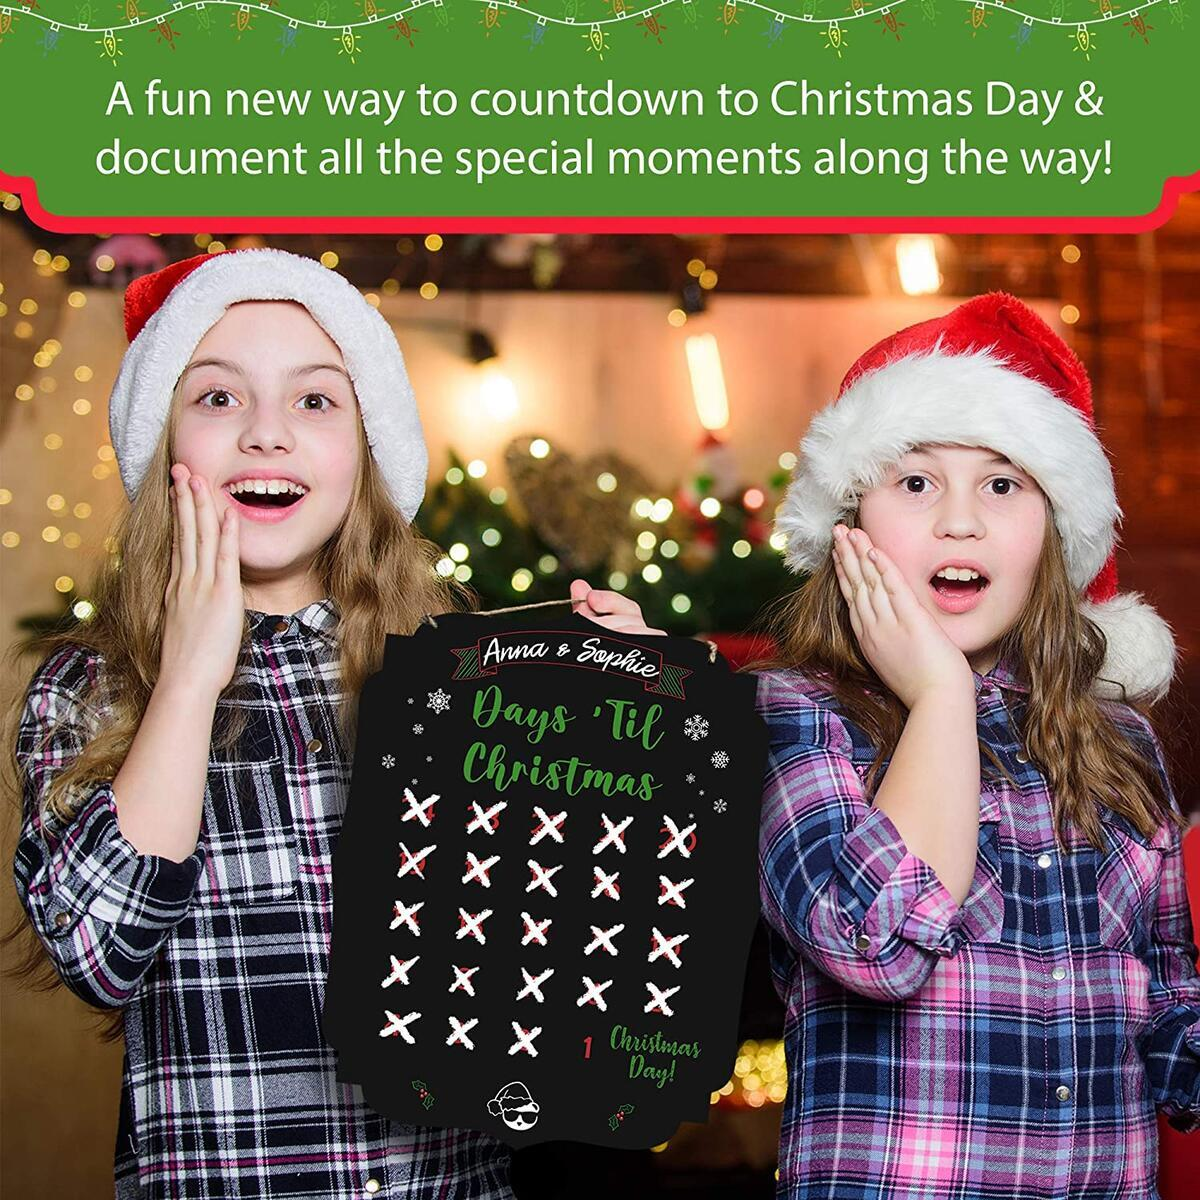 Christmas Countdown Calendar Chalkboard Sign | Fayfaire Jumbo Double-Sided Christmas Advent Calendar & Wish List for Kids | 14.5